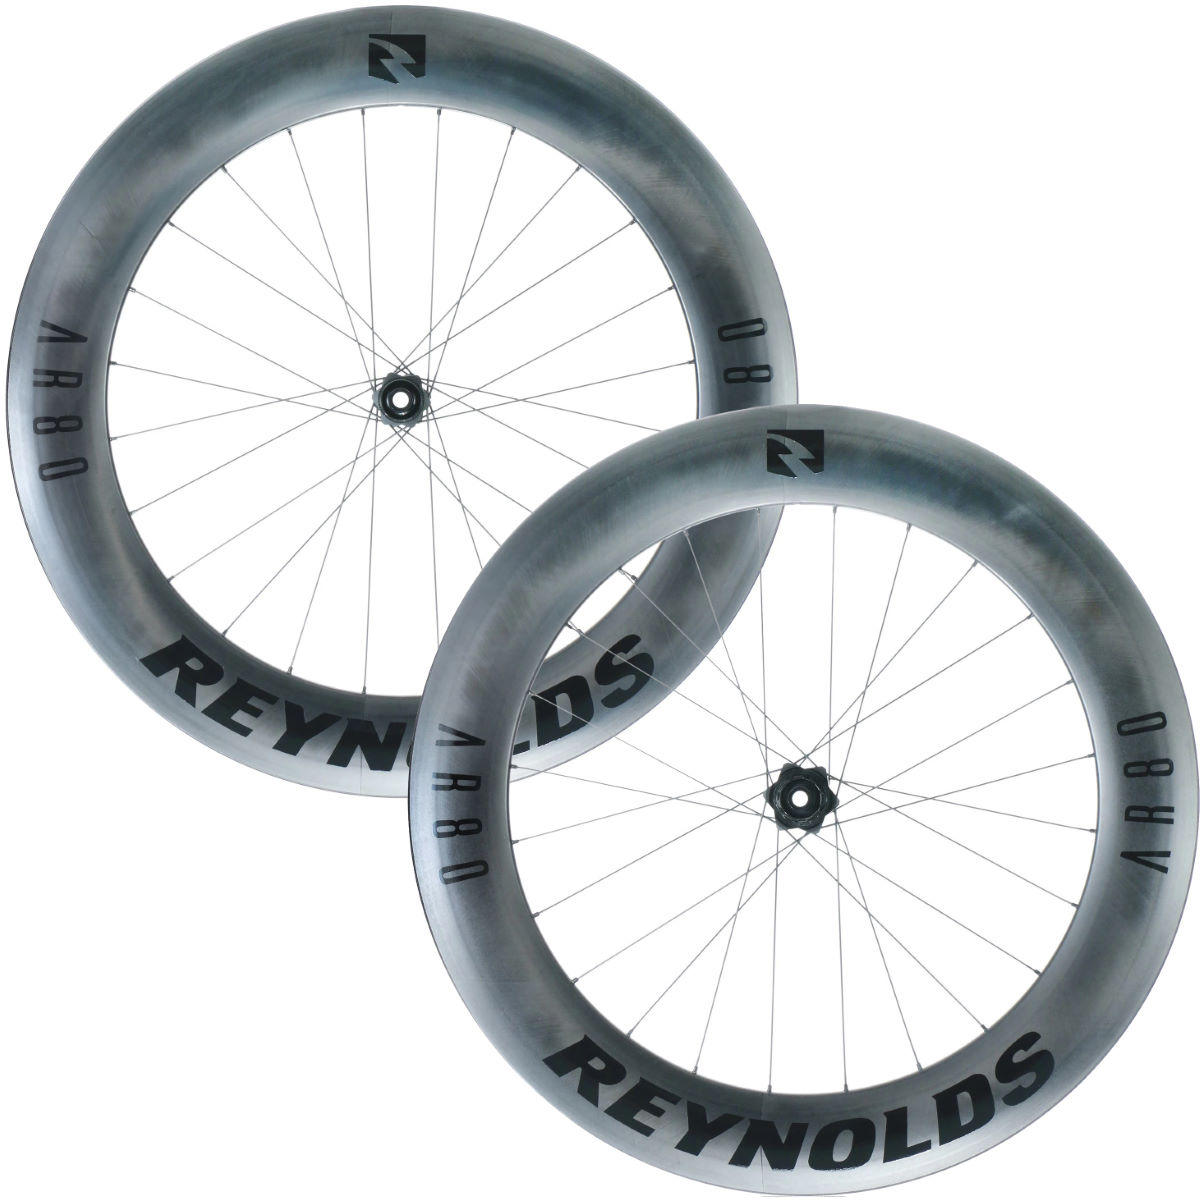 Reynolds Reynolds AR 80 Carbon Disc Road Wheelset   Wheel Sets